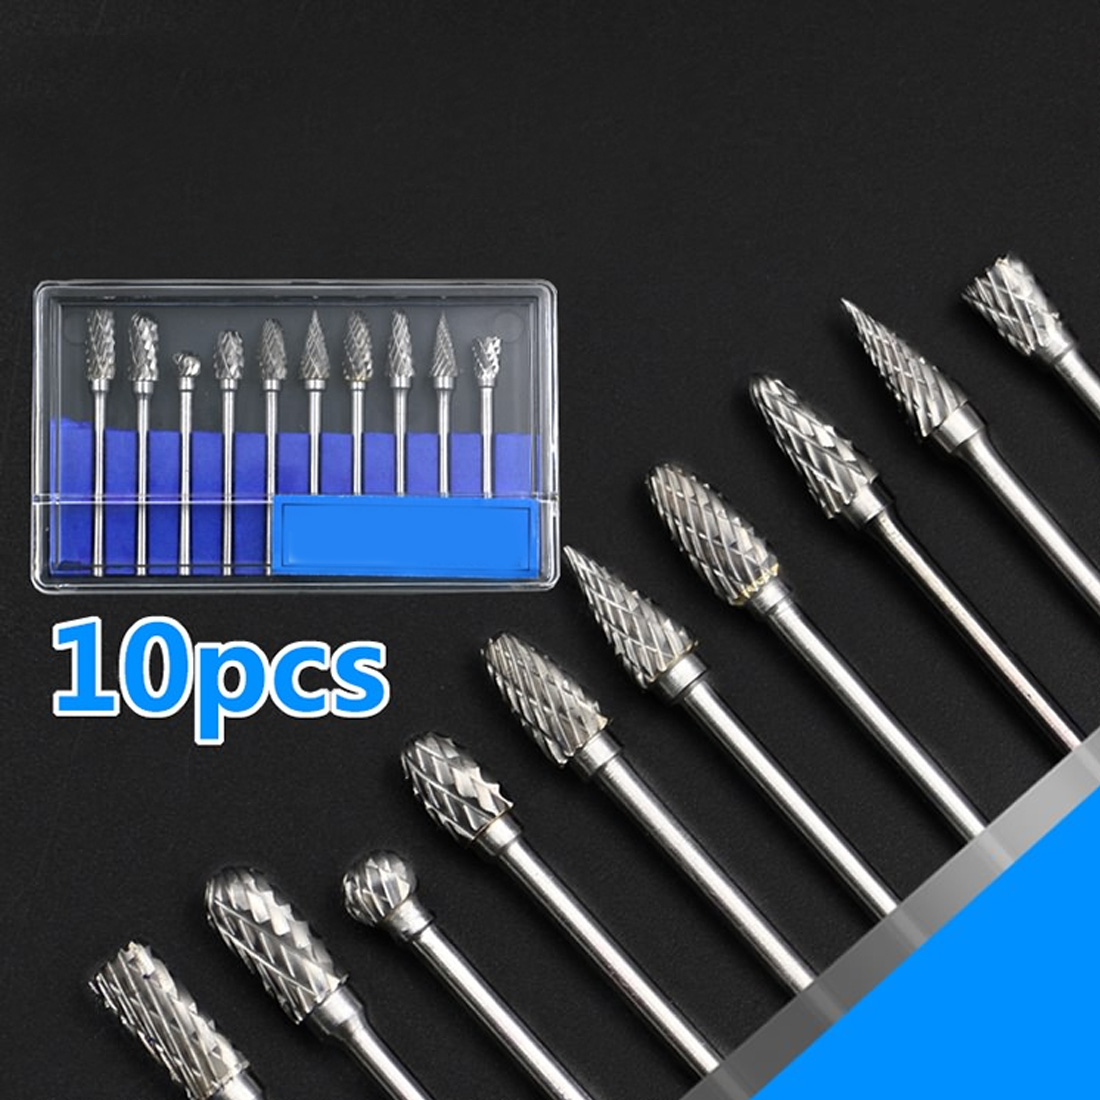 10pcs 1/8 Shank Tungsten Carbide Milling Cutter Rotary Drill Set Cone Drill Set Diamond Drill 10mm For Iron ,Steel ,Carbon Steel цены онлайн